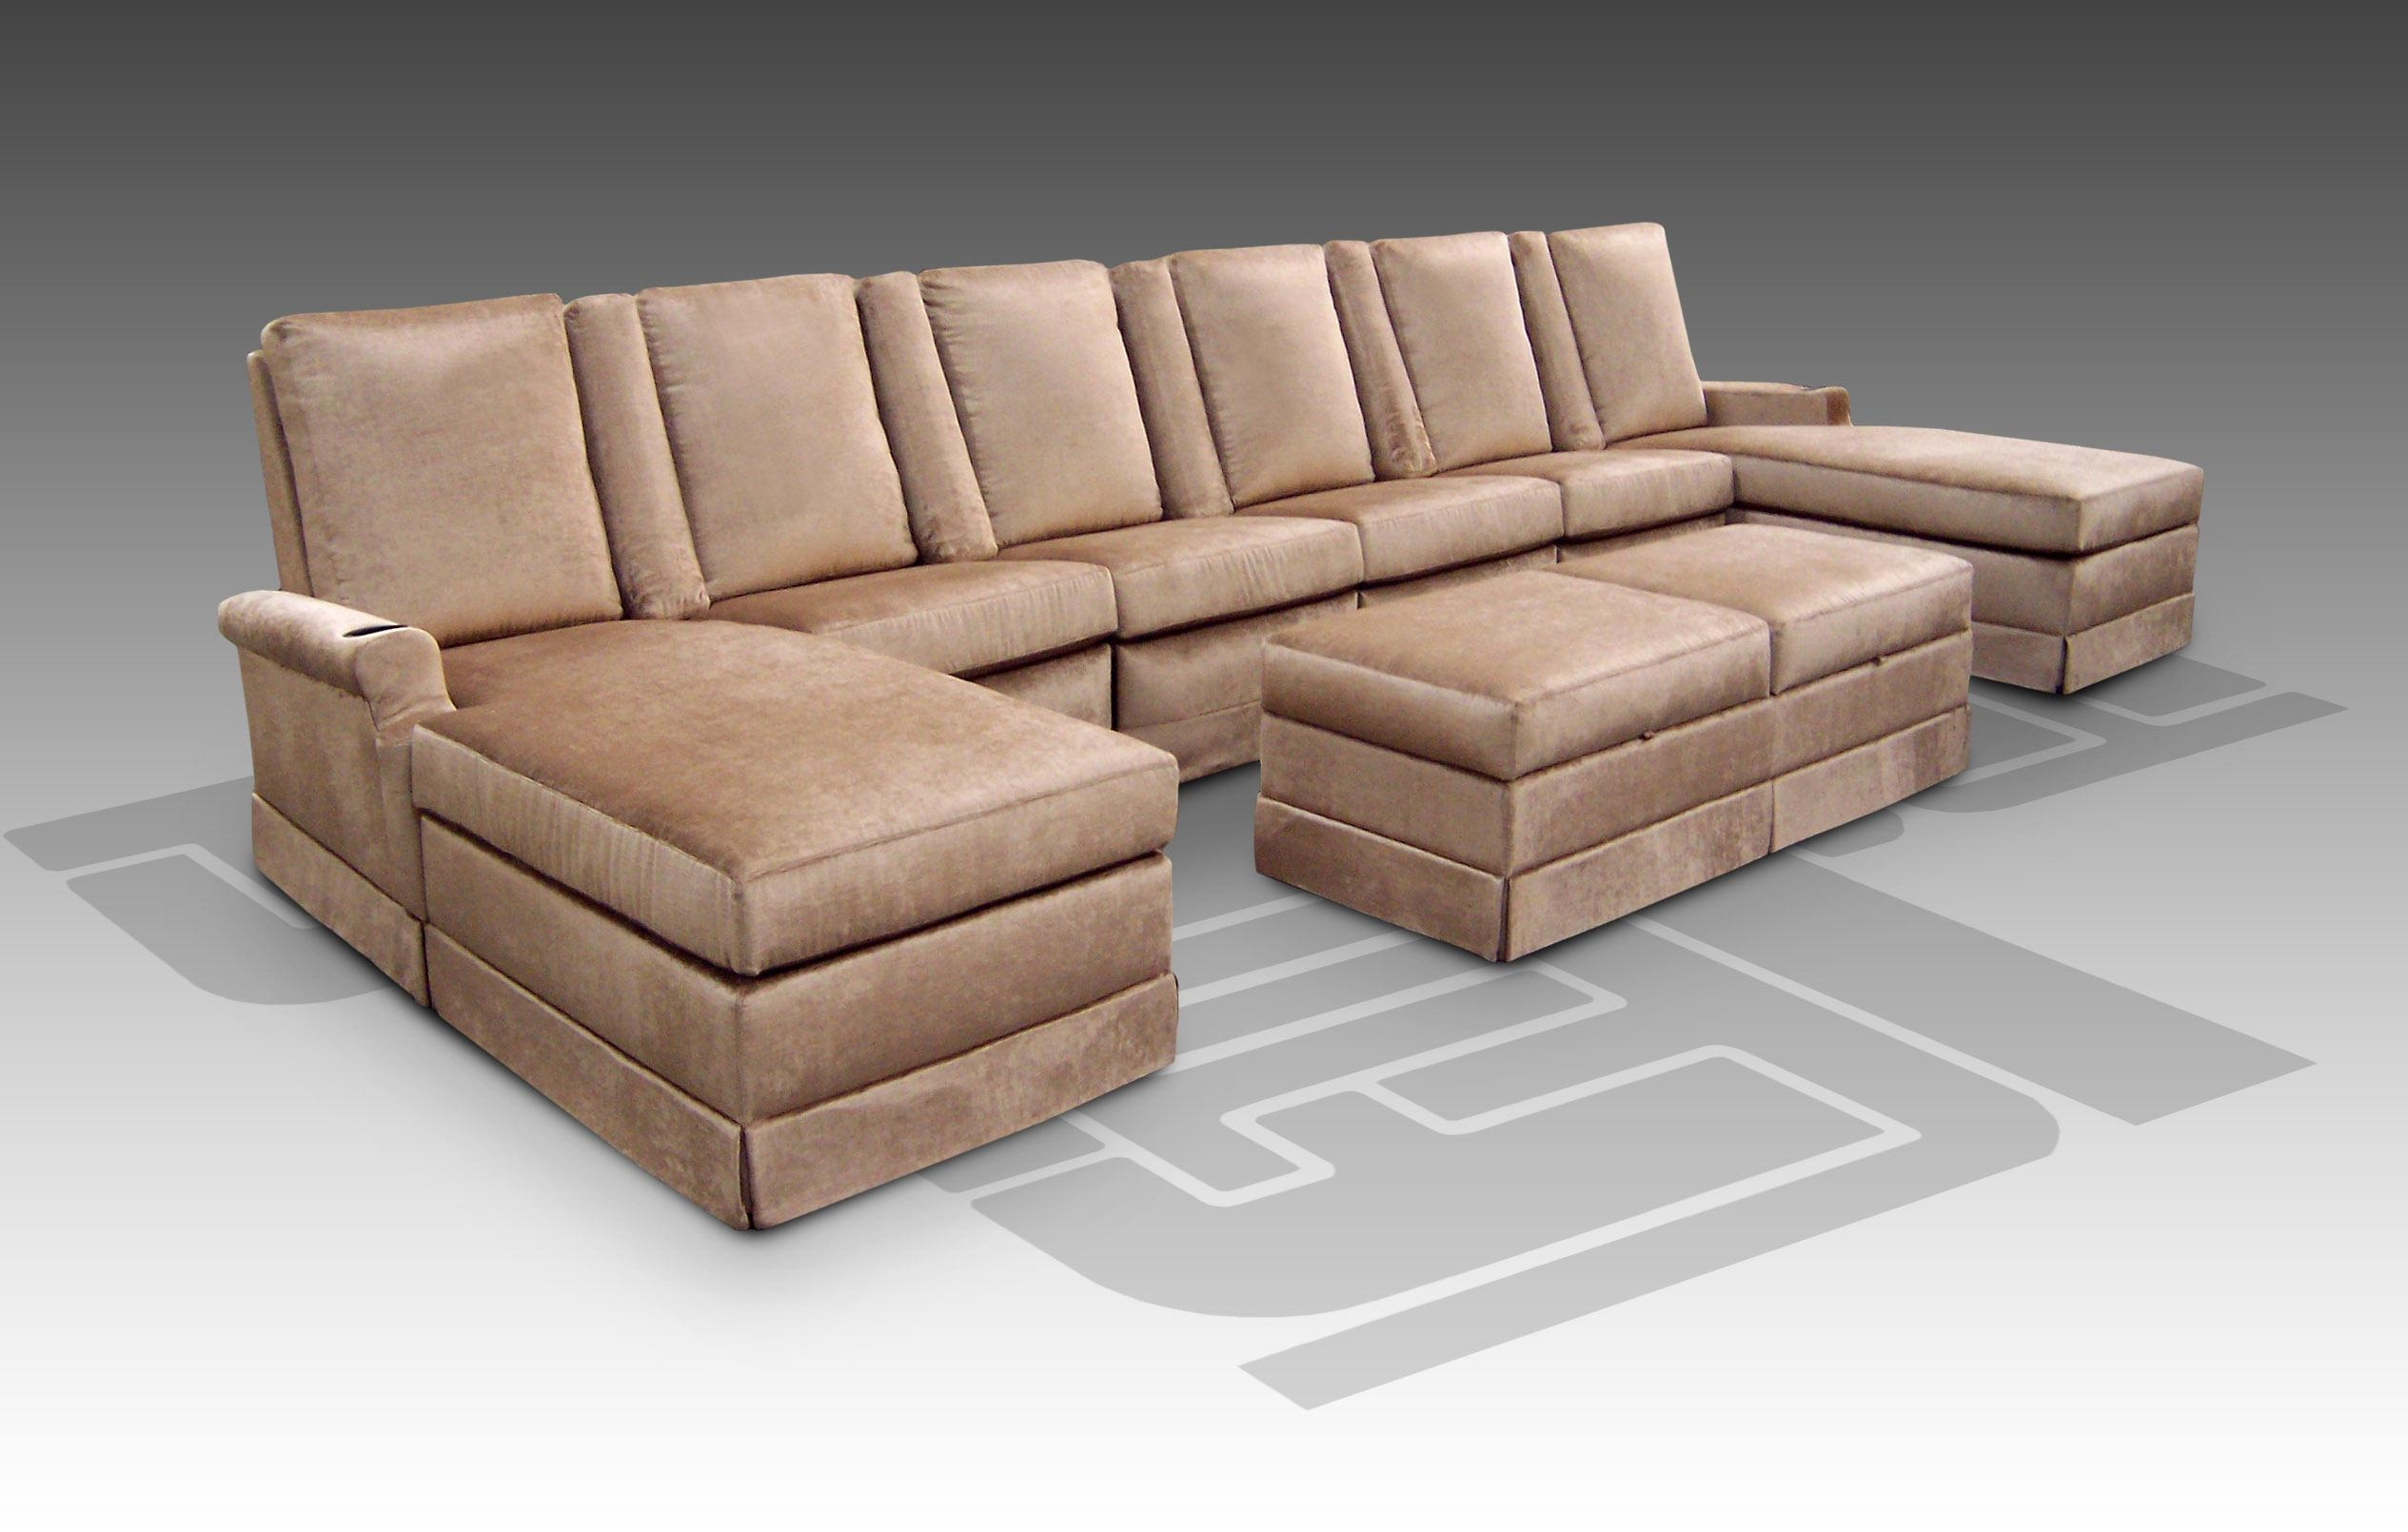 Movie Theater Sectional Sofas – Leather Sectional Sofa Regarding Theatre Sectional Sofas (View 13 of 20)